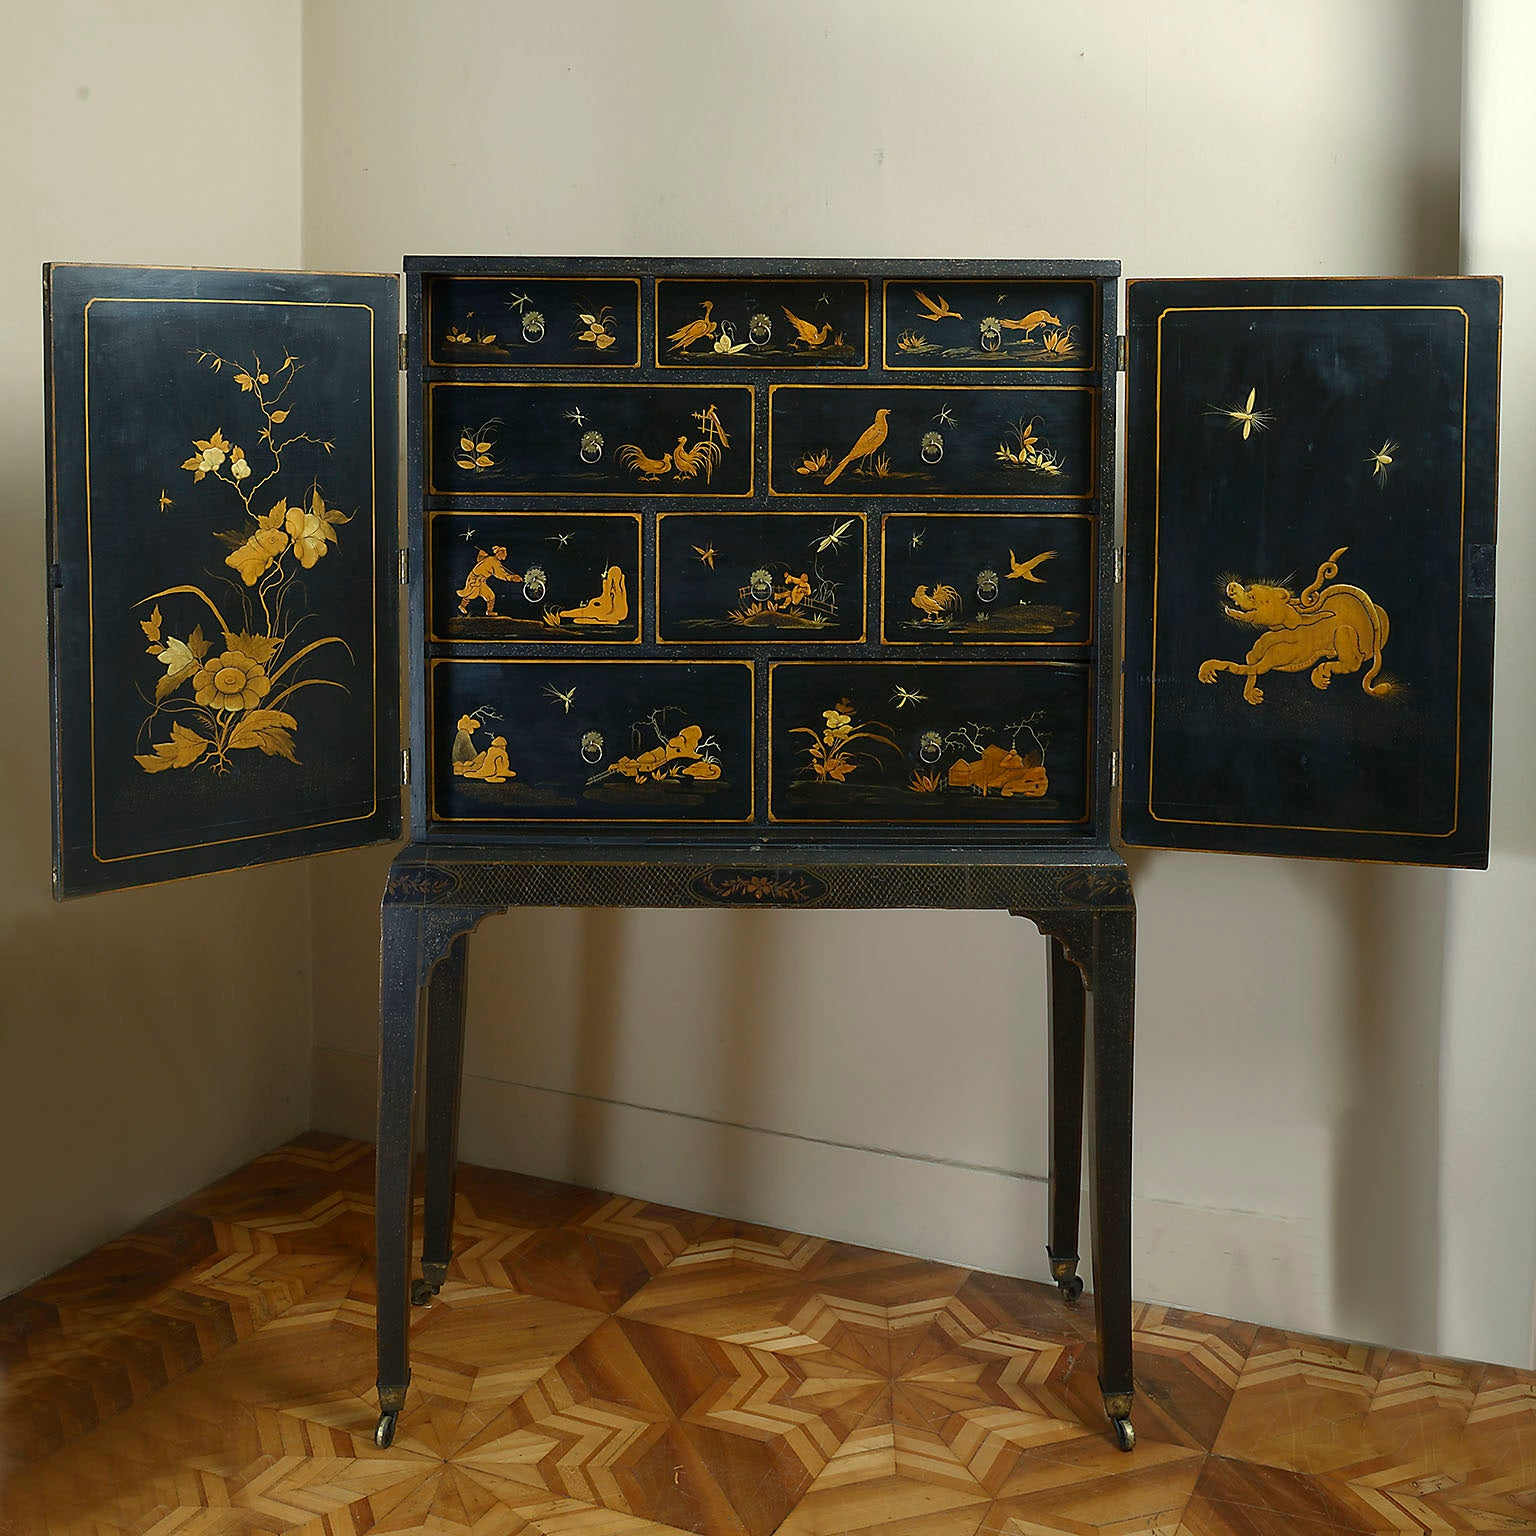 Rare George 1 Japanned Cabinet on Stand